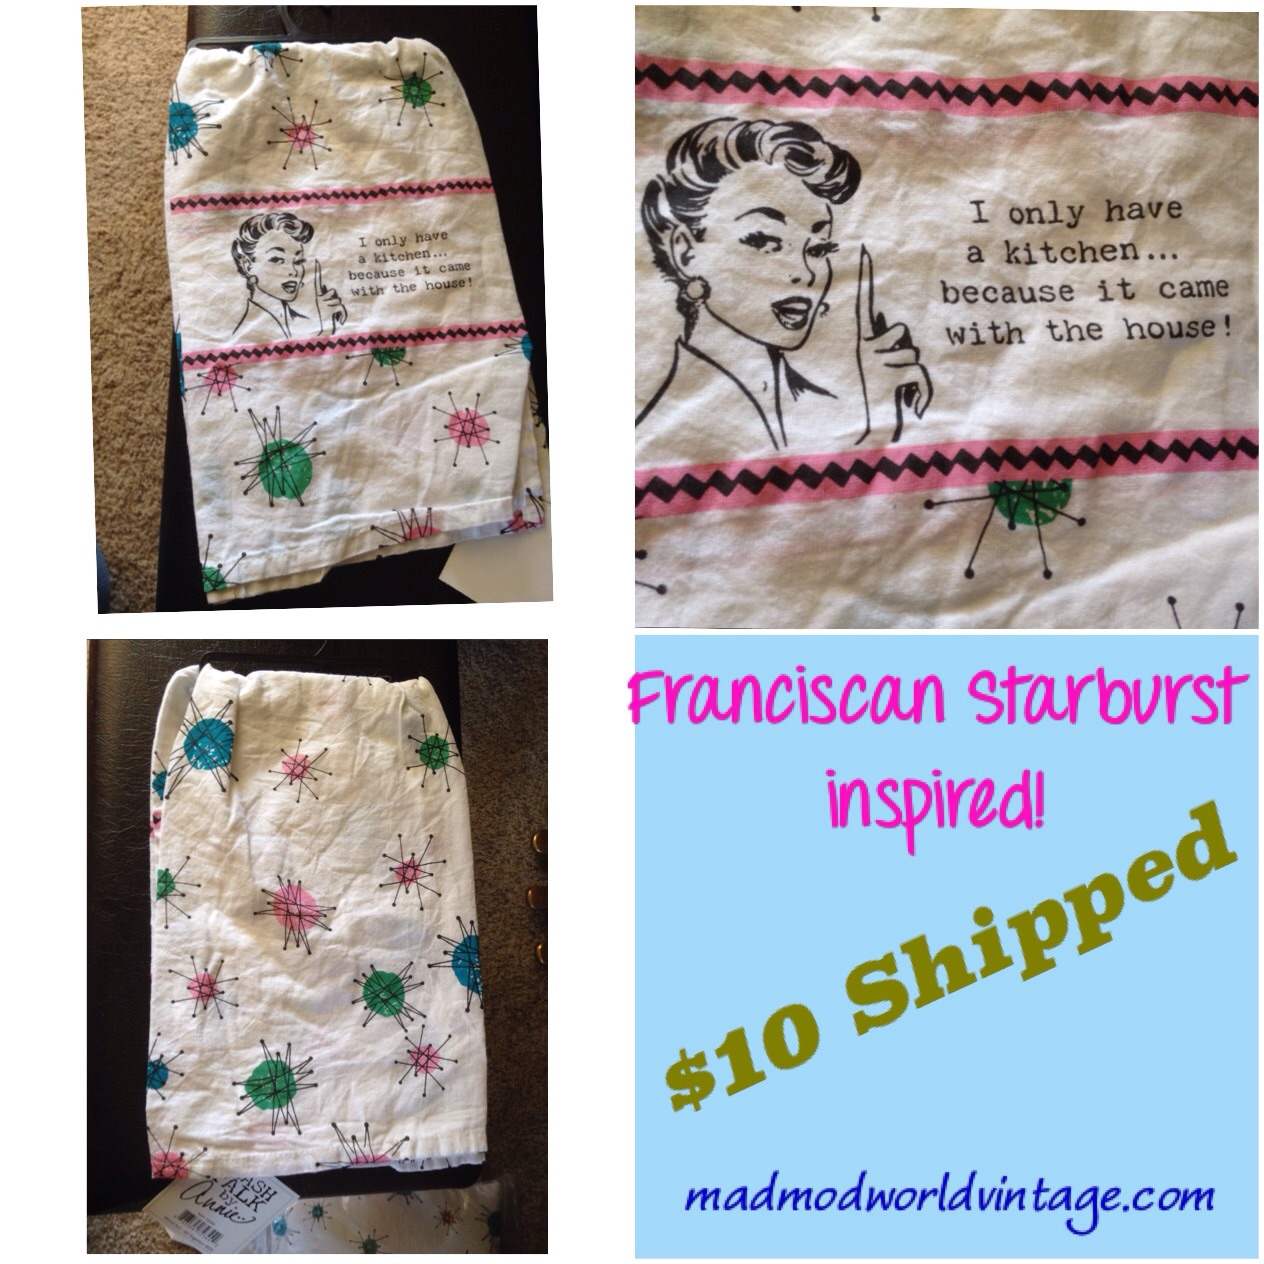 More Franciscan Starbursts!  10 available.